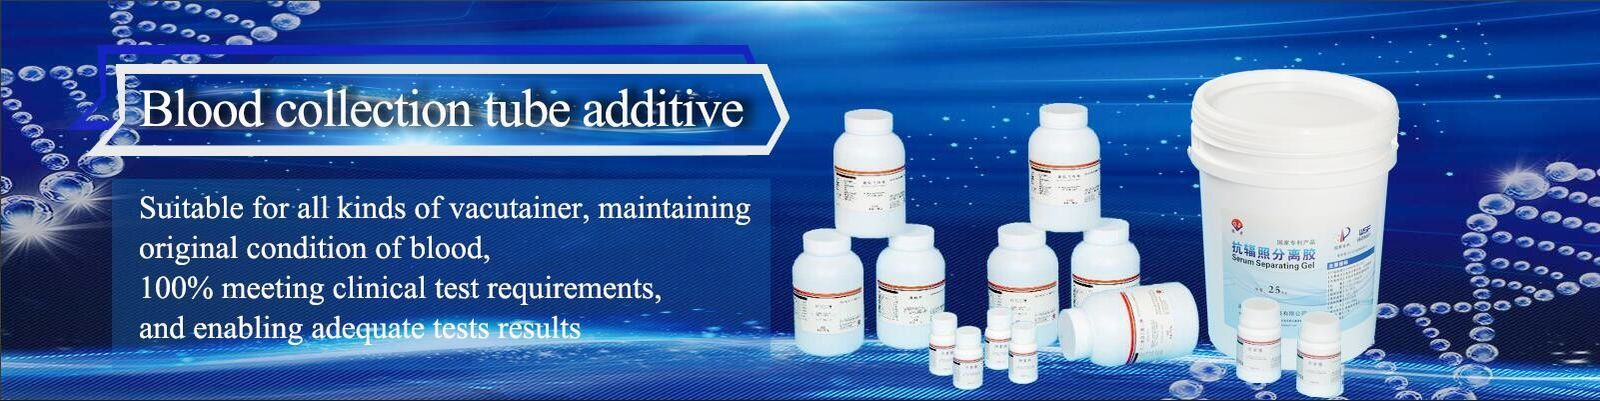 Blood Collection Tube Additives